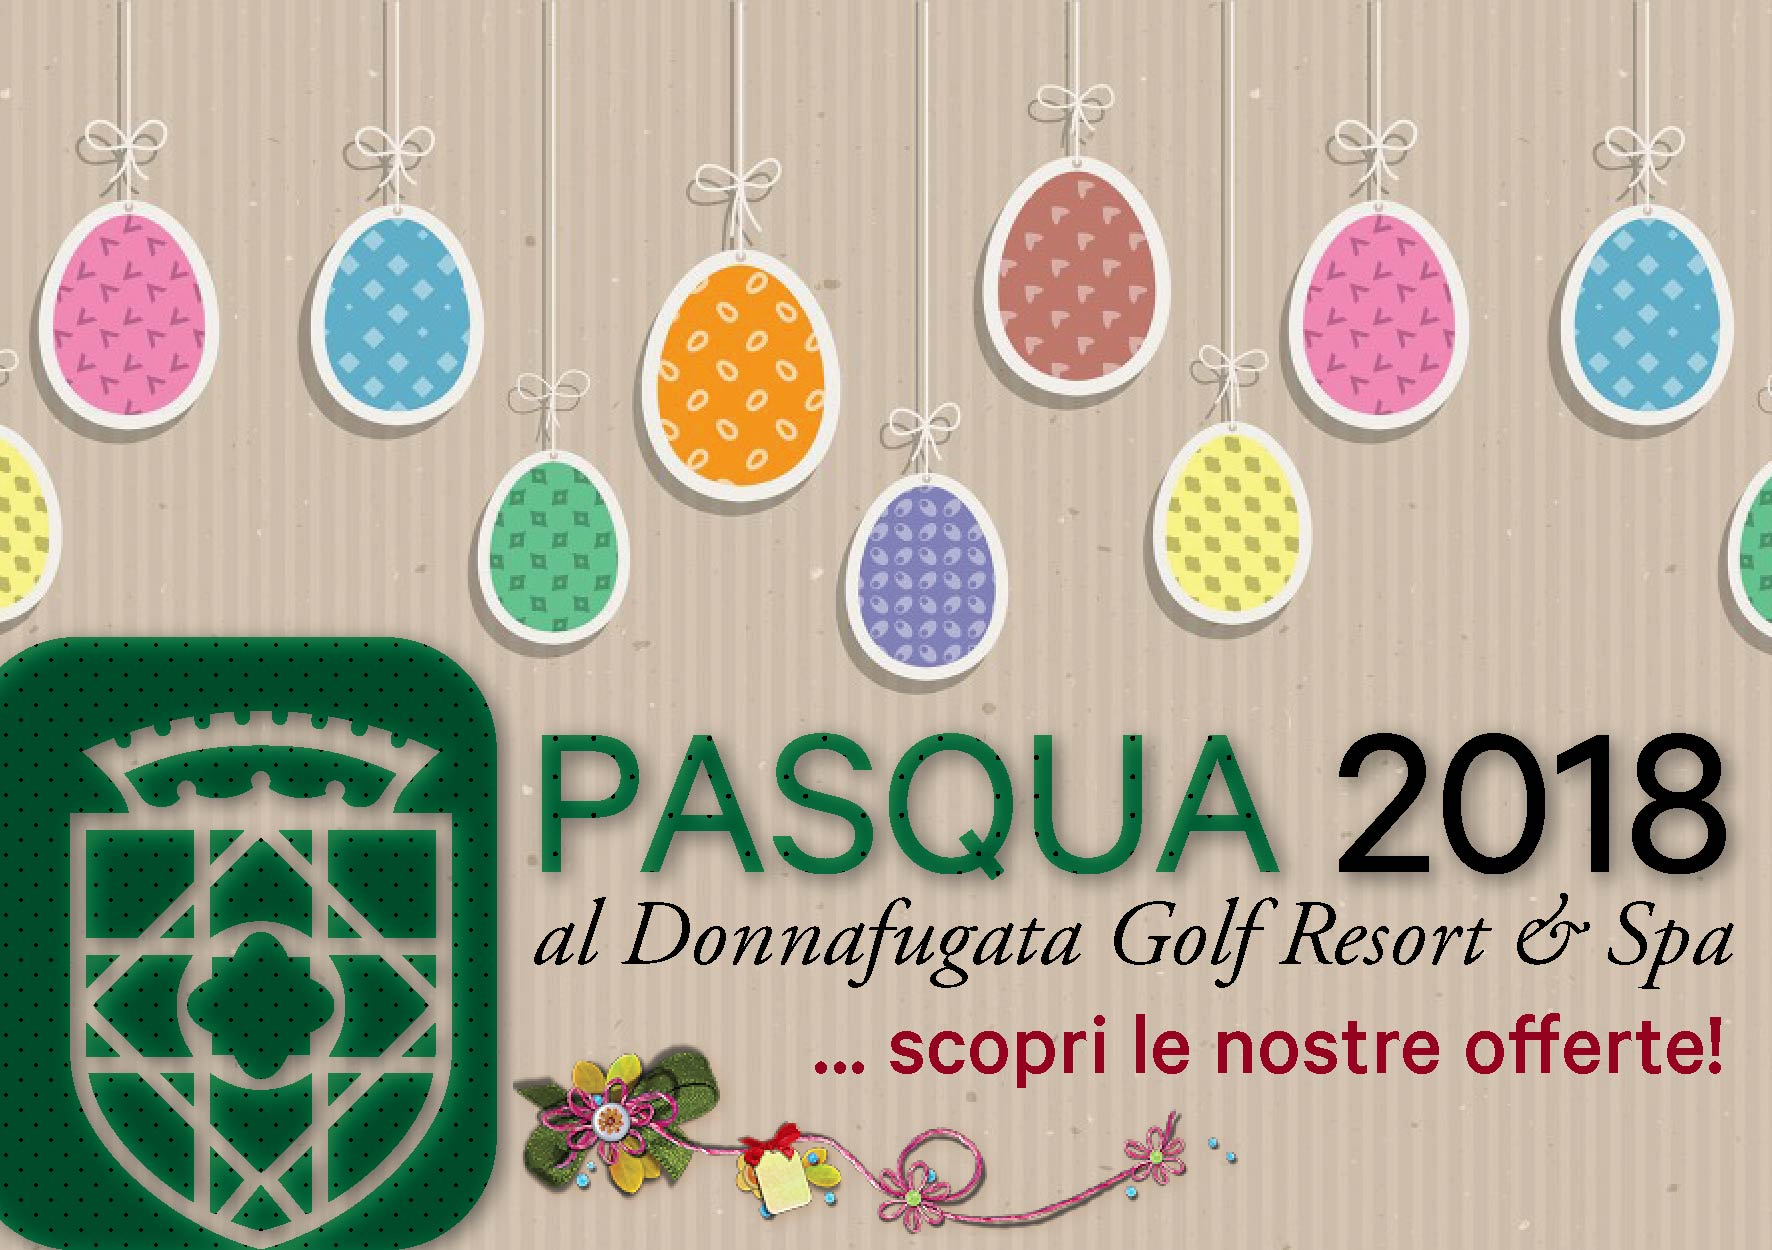 Pasqua 2018 al Donnafugata Golf Resort & Spa